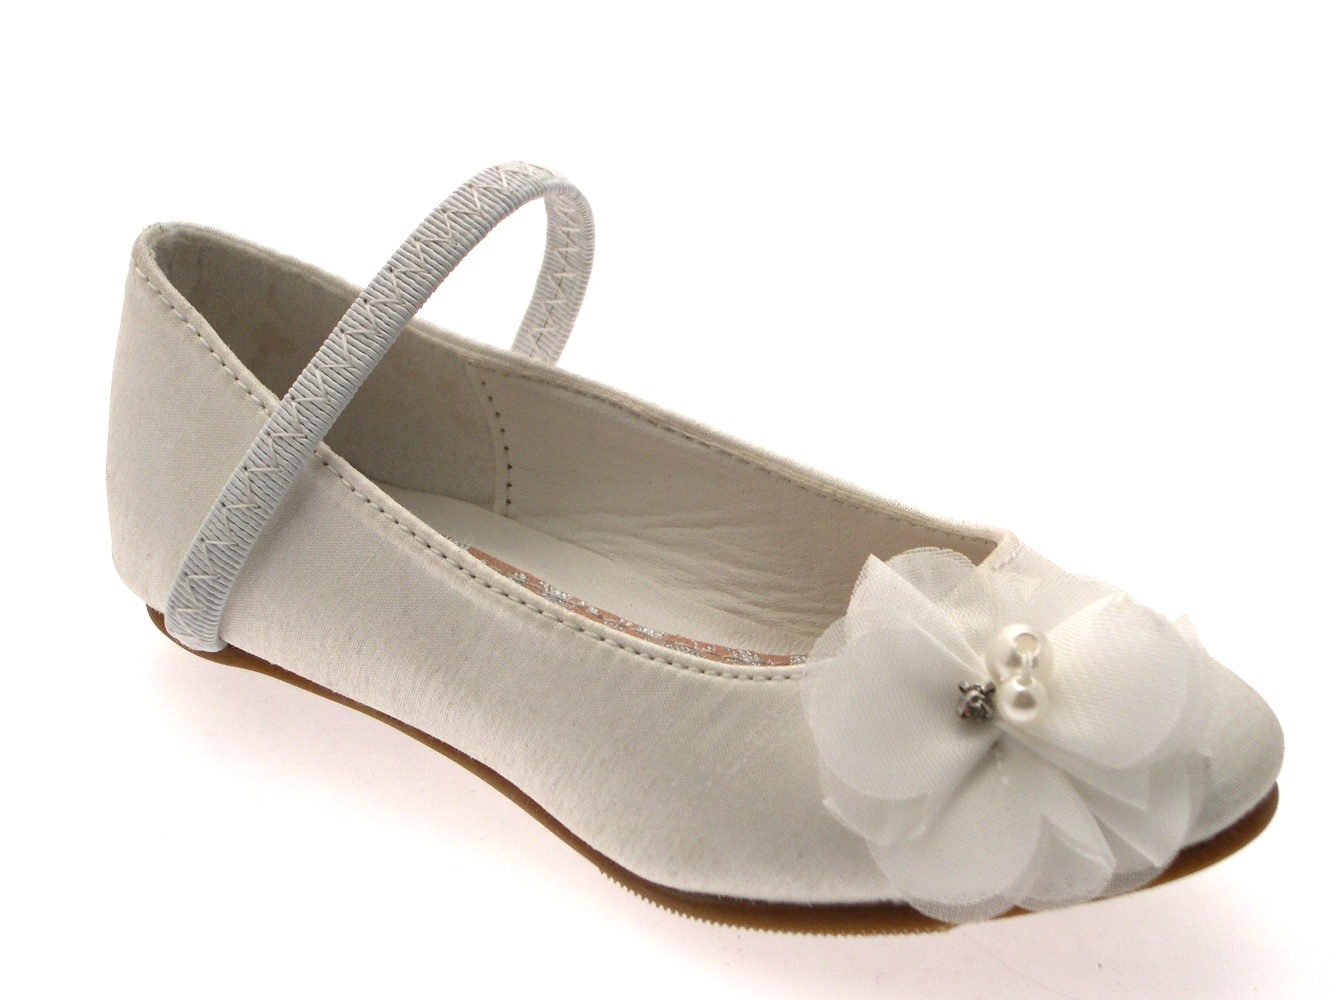 SATIN FLOWER WEDDING BRIDAL BRIDESMAID IVORY CREAM SHOES SANDALS 6 2